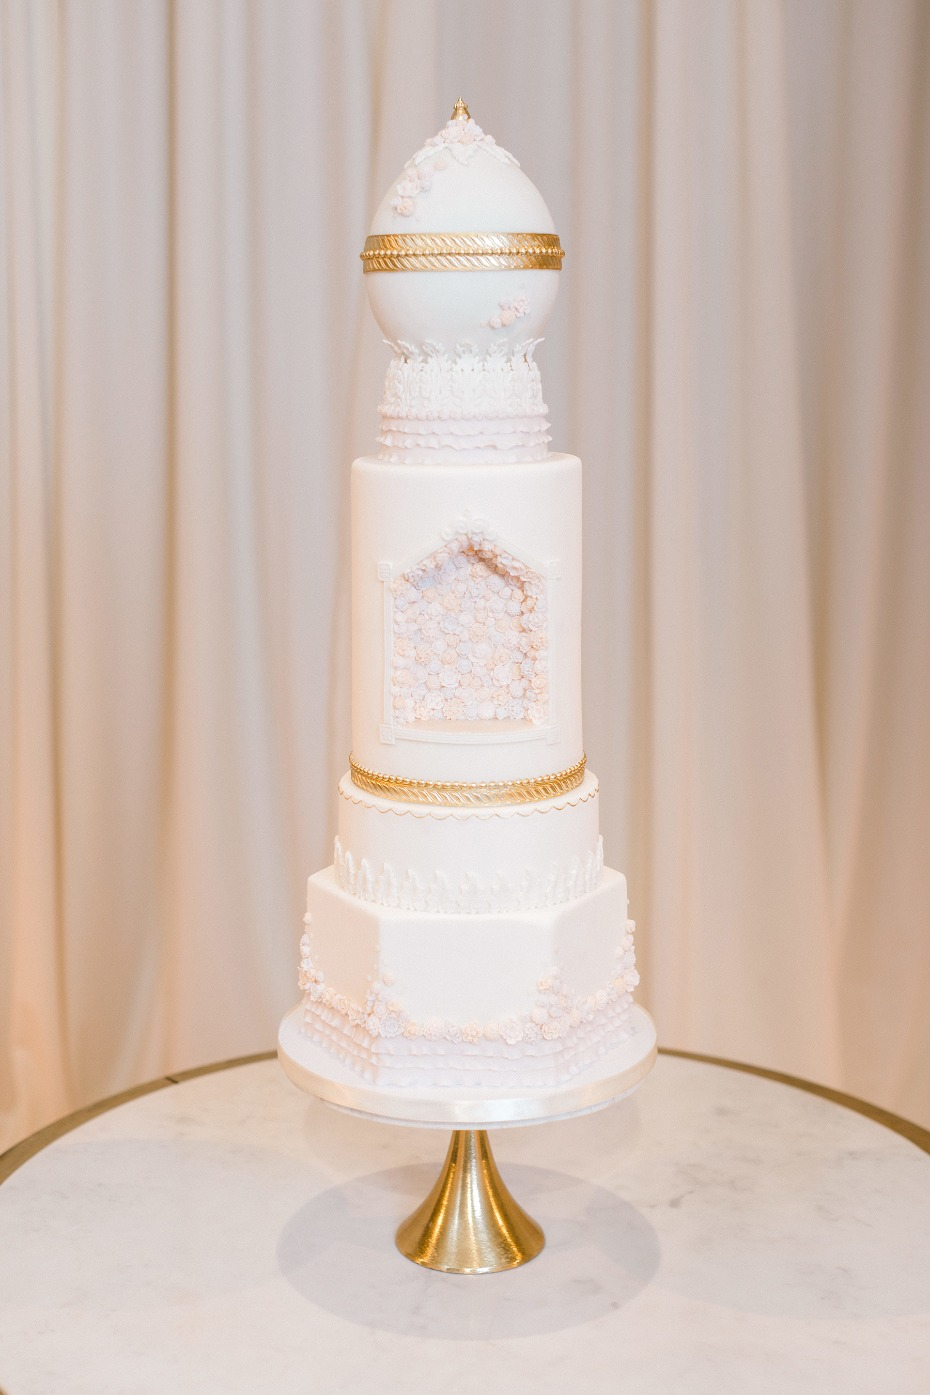 Faberge egg inspired wedding cake in gold and white